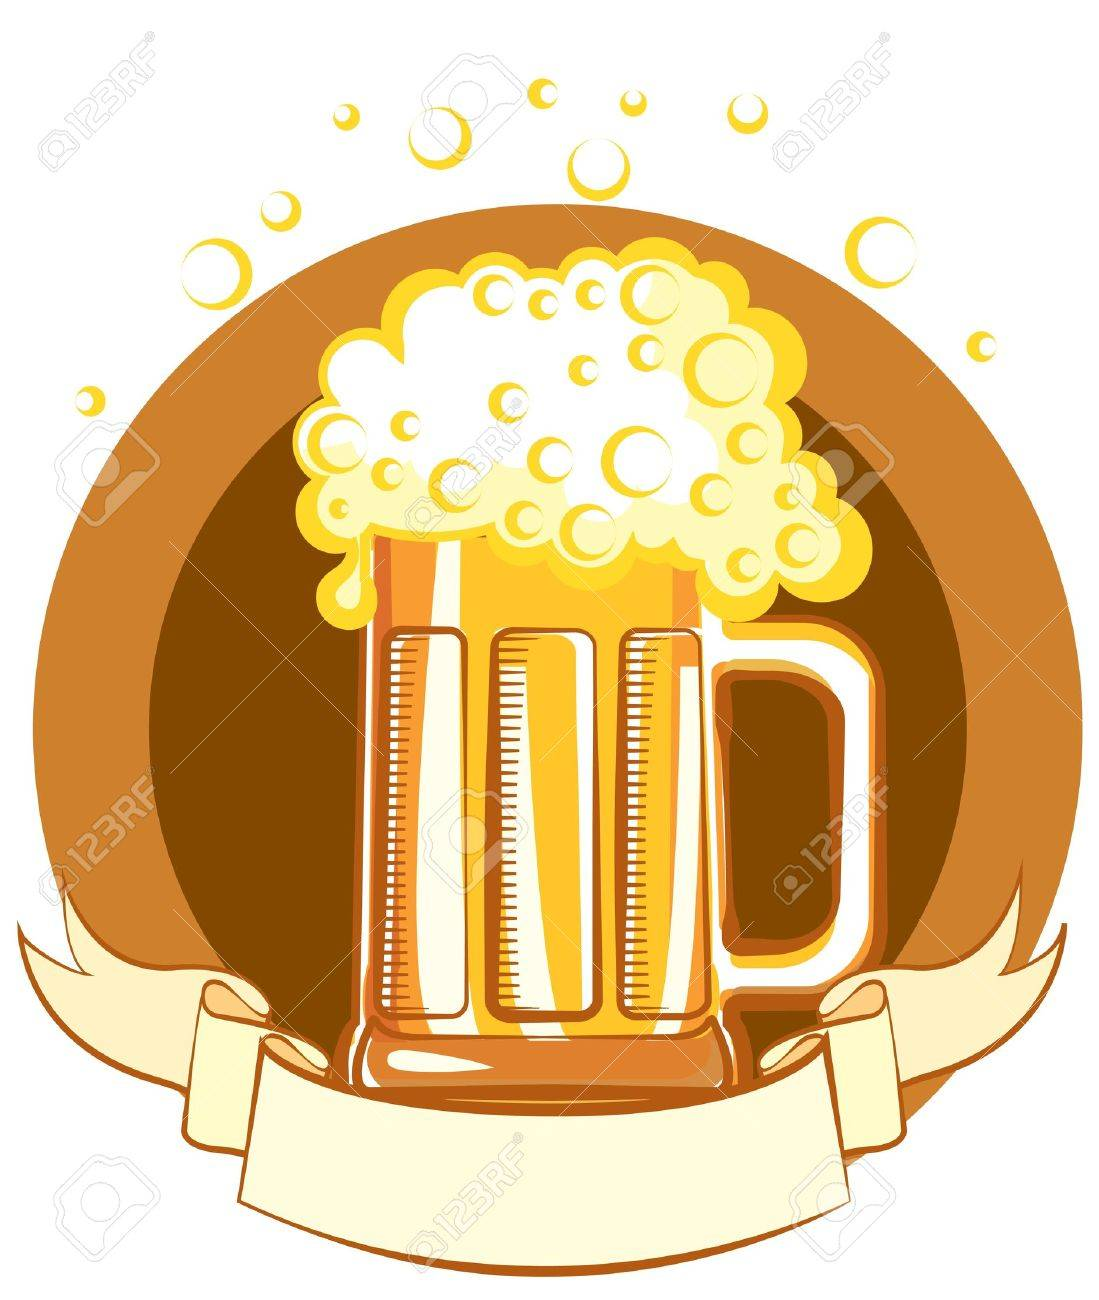 Glass of beer. color symbol of Illustration for text Stock Vector - 9533140